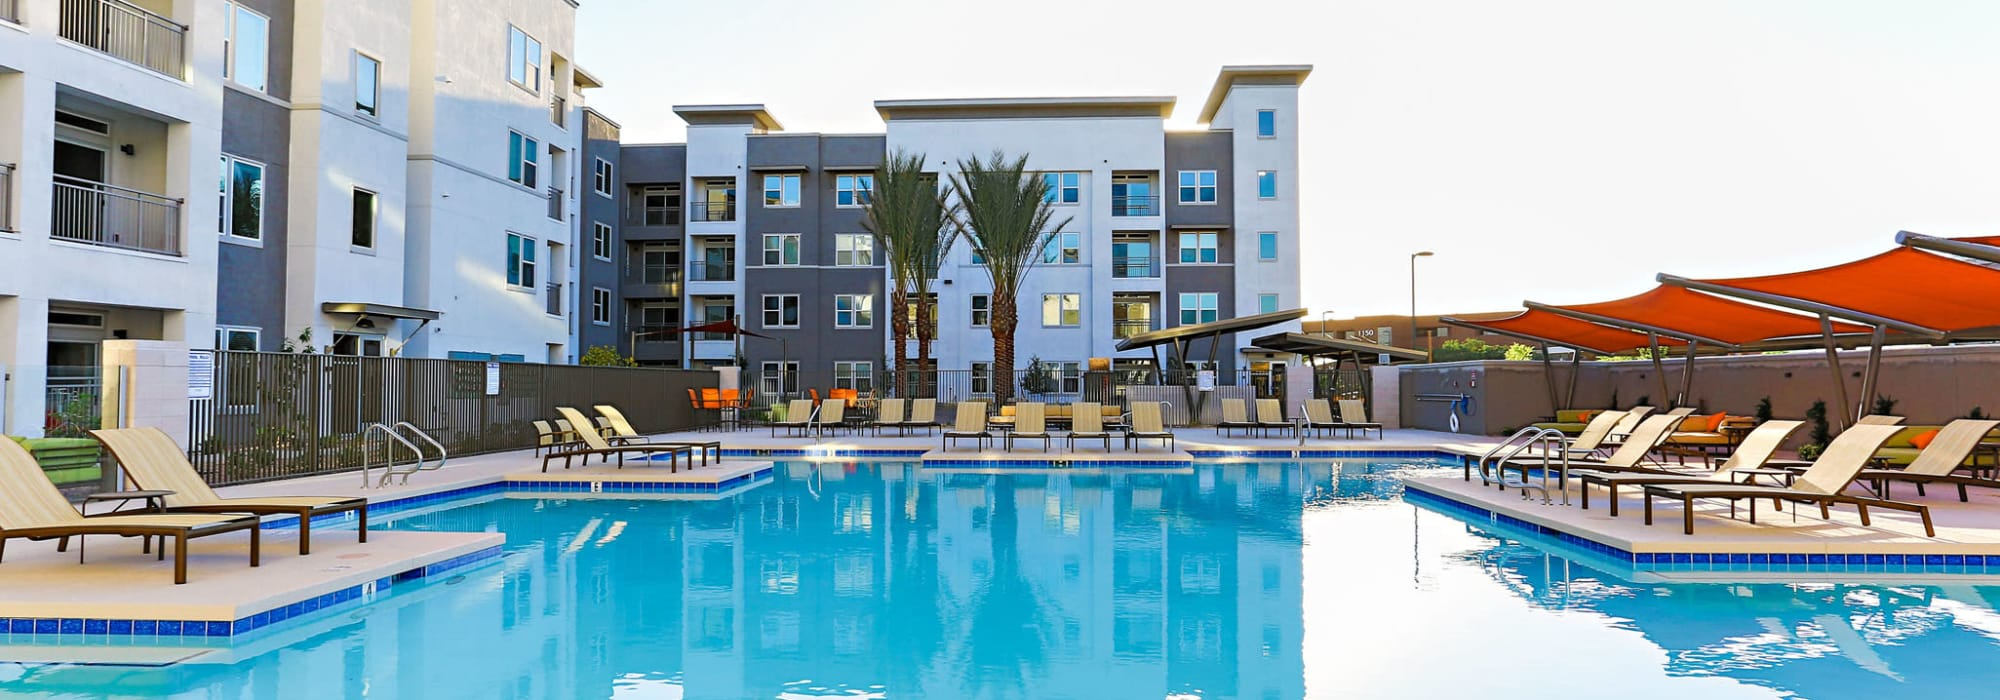 Gorgeous swimming pool area at The Hyve in Tempe, Arizona